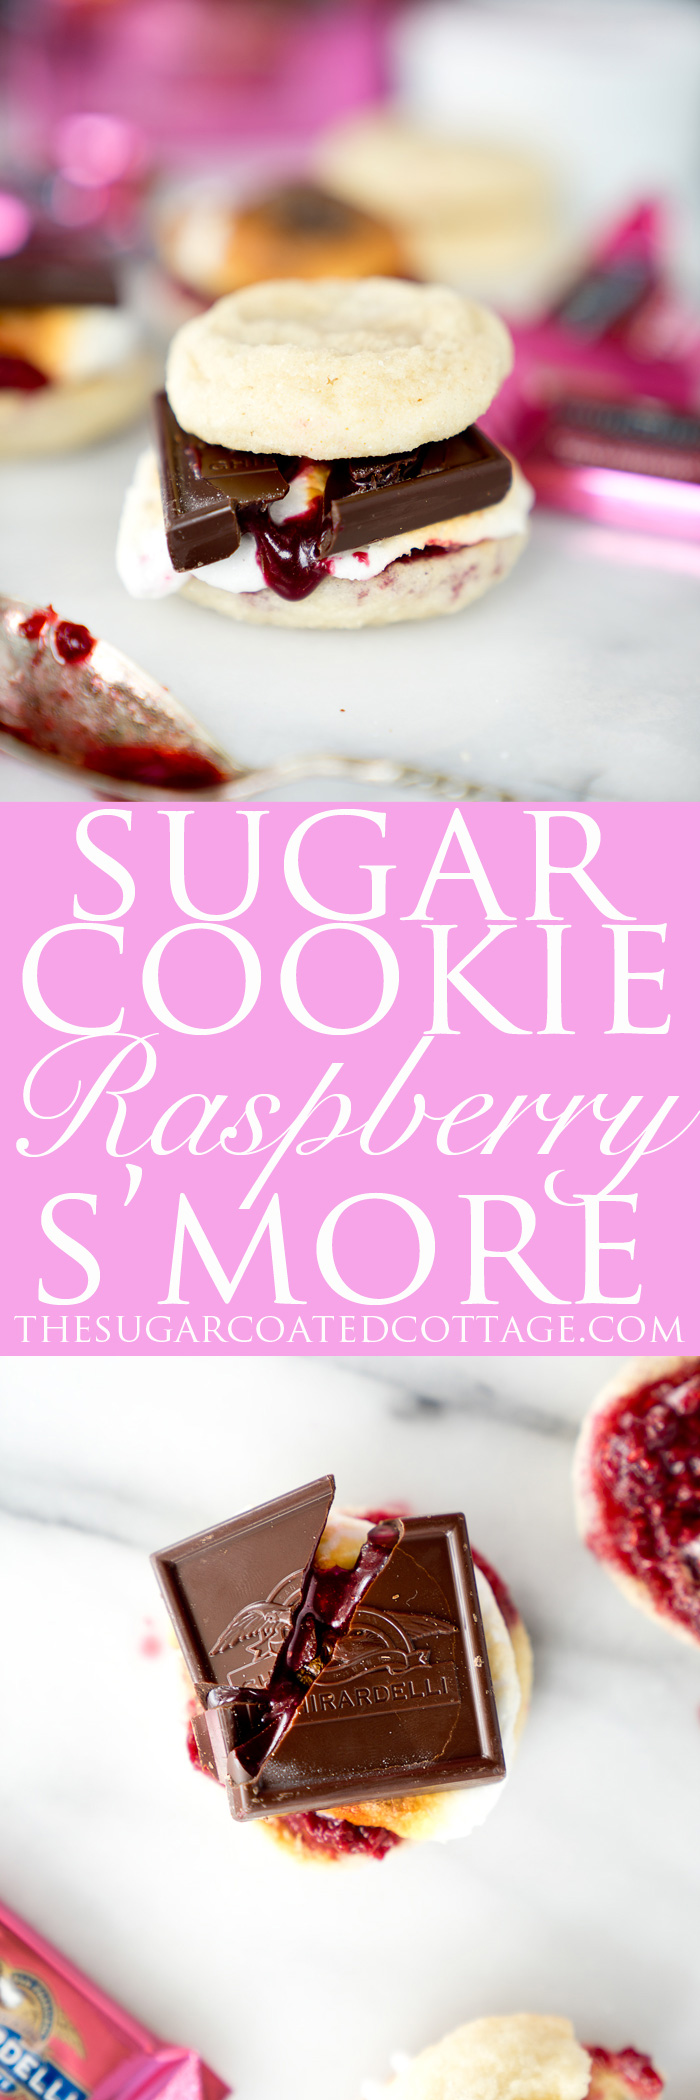 Raspberry Sugar Cookie S'mores. The best twist on a traditional recipe. Soft, pillowy, buttery sugar cookies, toasted marshmallows and homemade raspberry sauce make these the s'mores of your dreams. | thesugarcoatedcottage.com